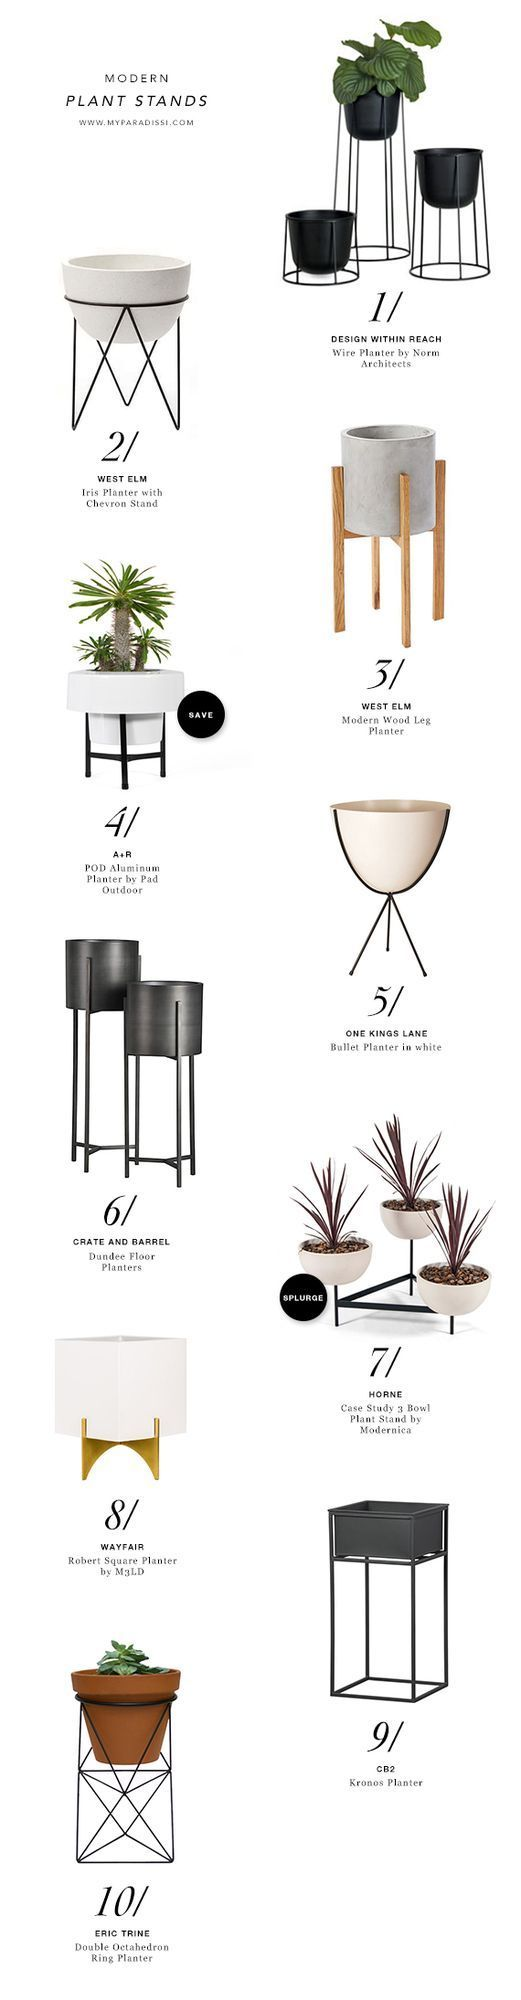 1 | Wire Planter by Norm Architects (Design Withing Reach, $75+)2 |Iris Planter with Chevron Stand (West Elm, $99+)3 |Modern Wood Leg Planter (West Elm, $109+)4 |POD Aluminum Planter by Pad Outdoor: